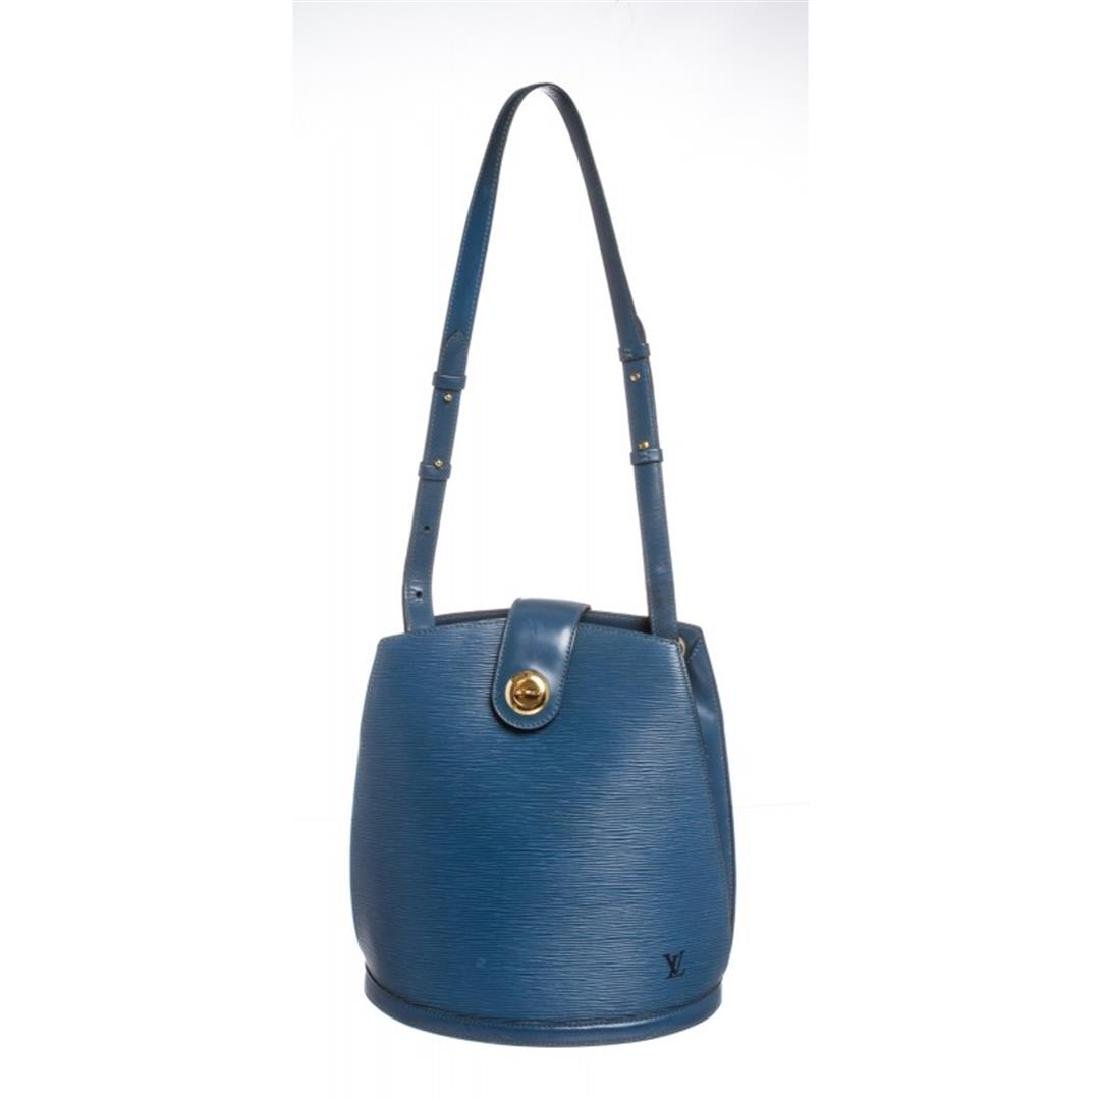 Louis Vuitton Blue Epi Leather Cluny Shoulder Bag